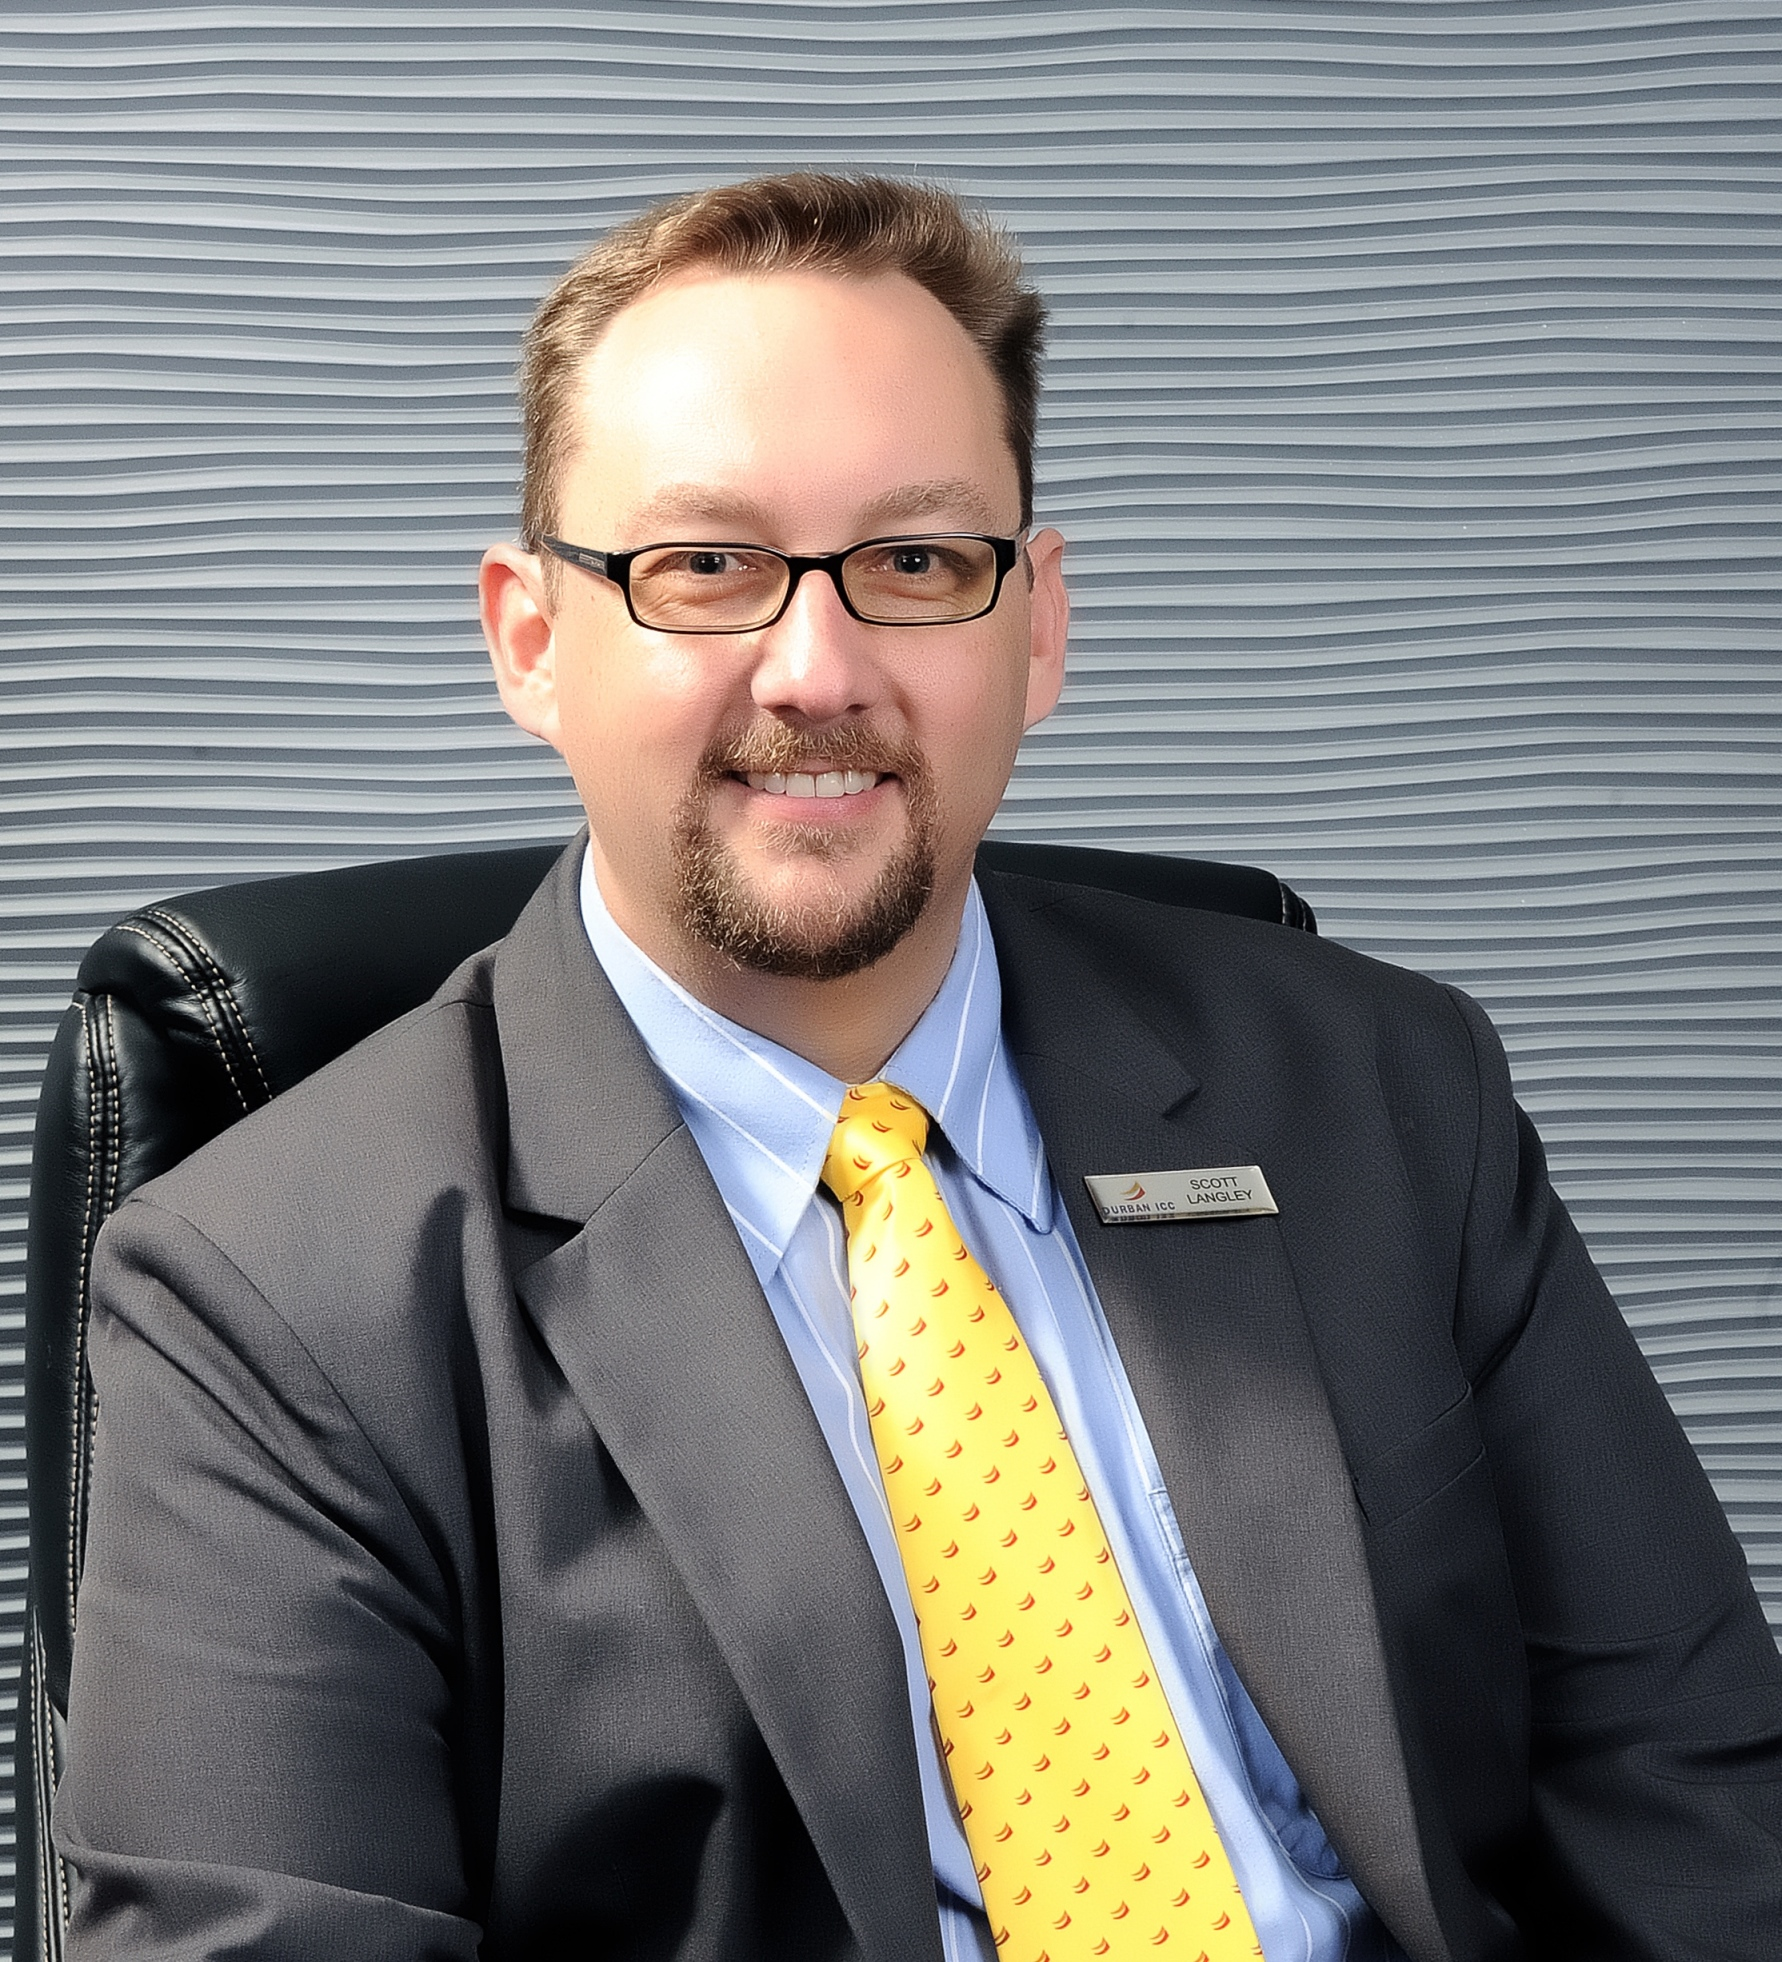 Image: Scott Langley, Durban ICC's newly appointed Marketing and Sales Director